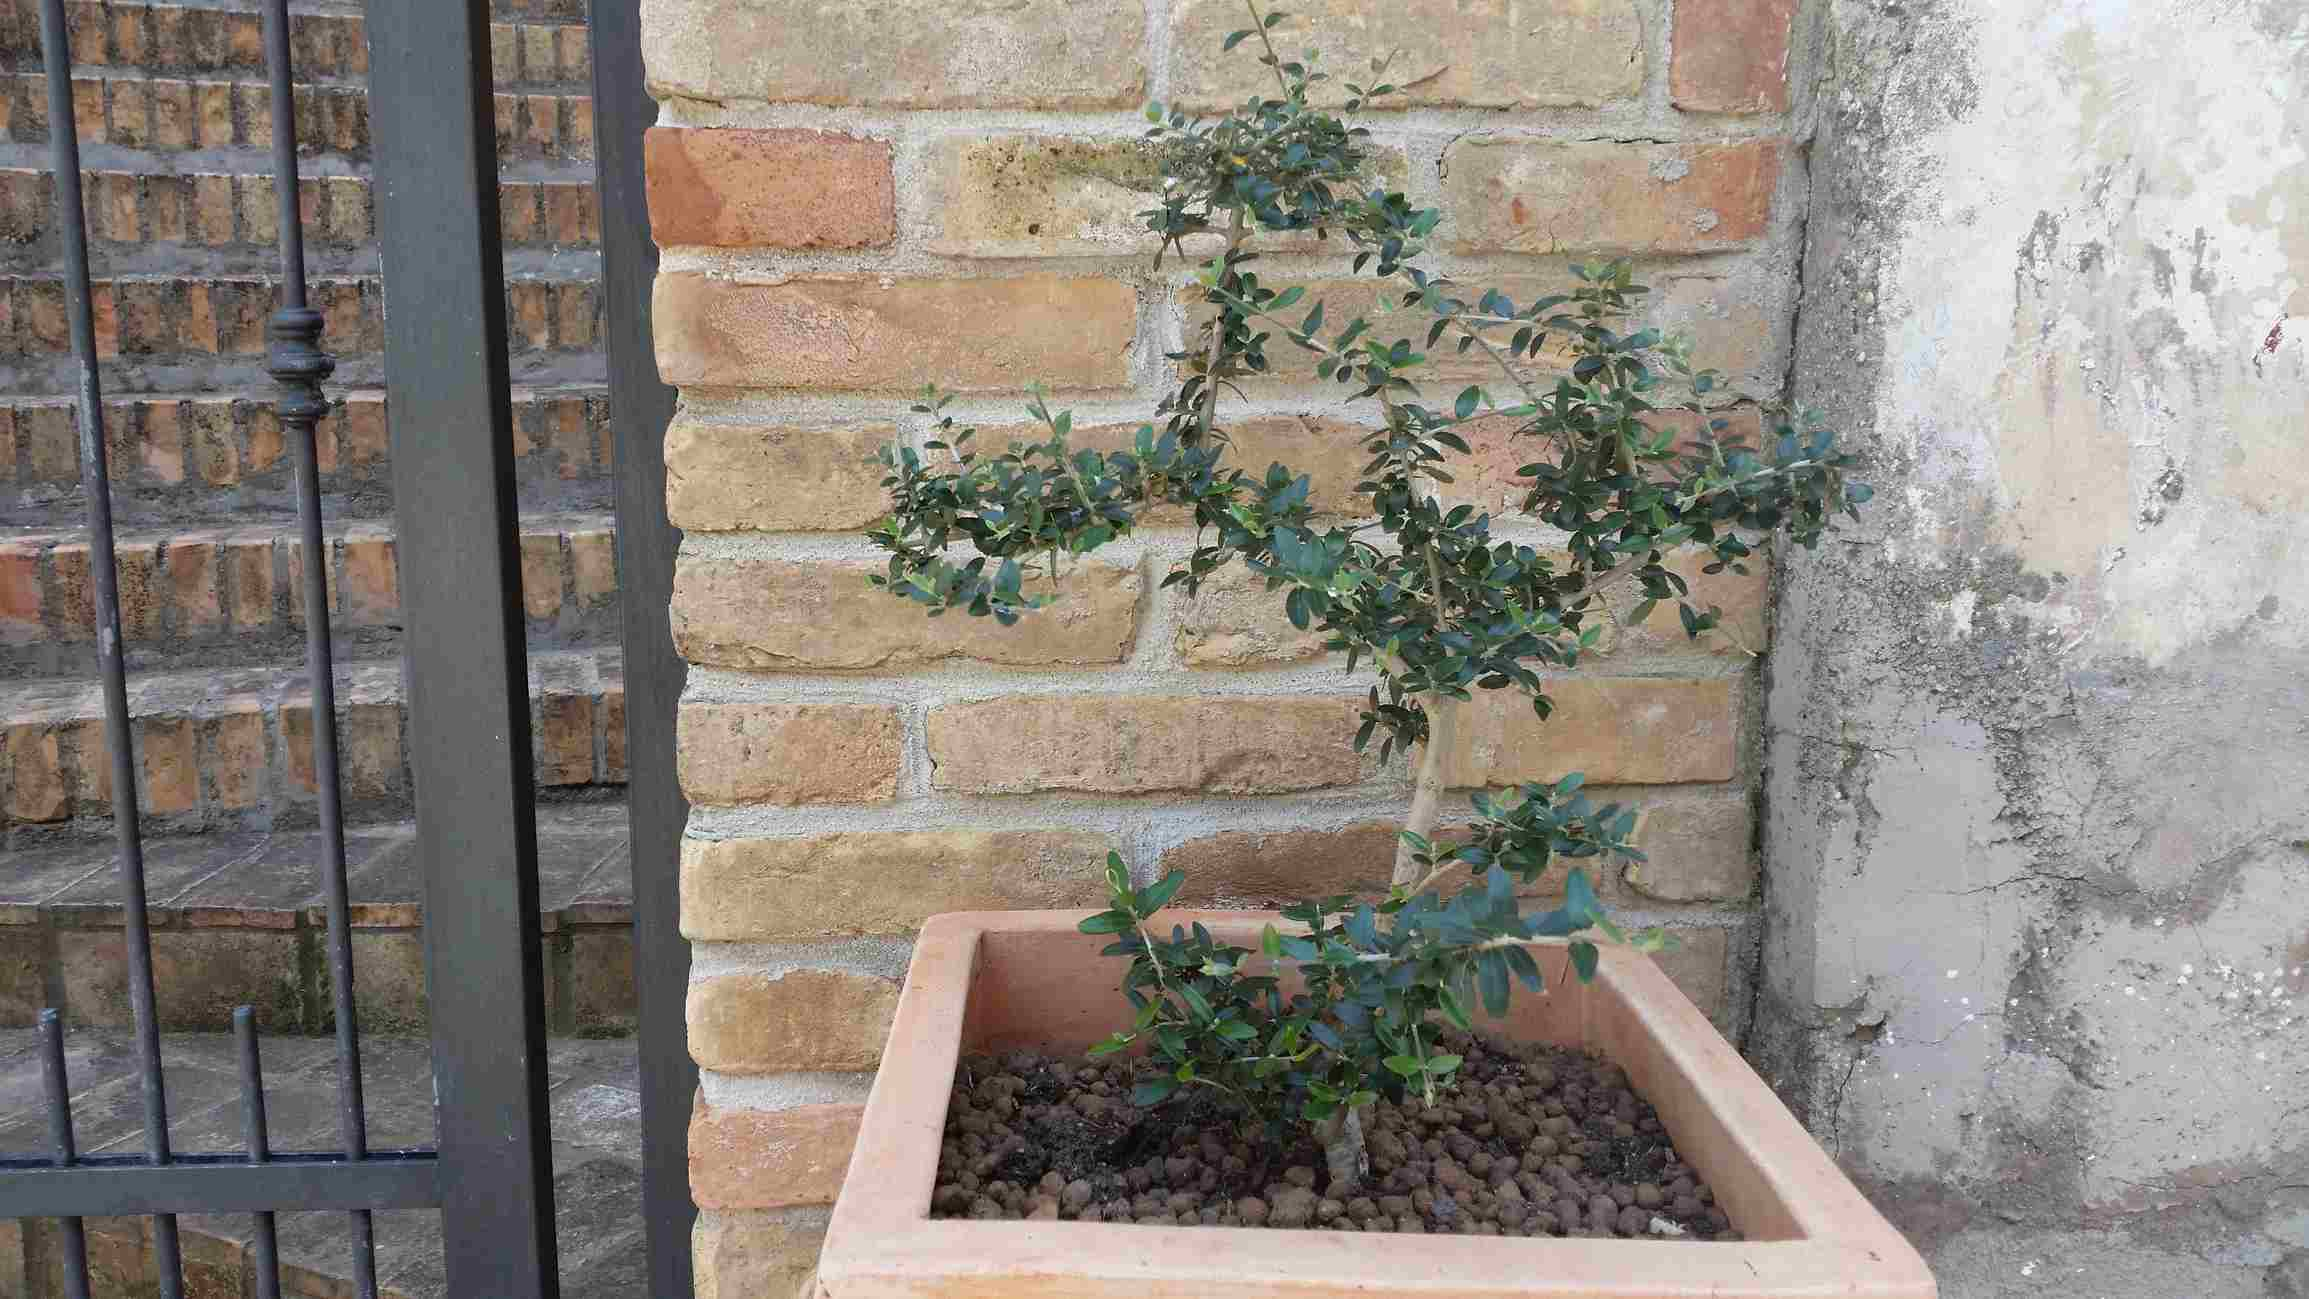 Young Arbequina olive tree in a planter